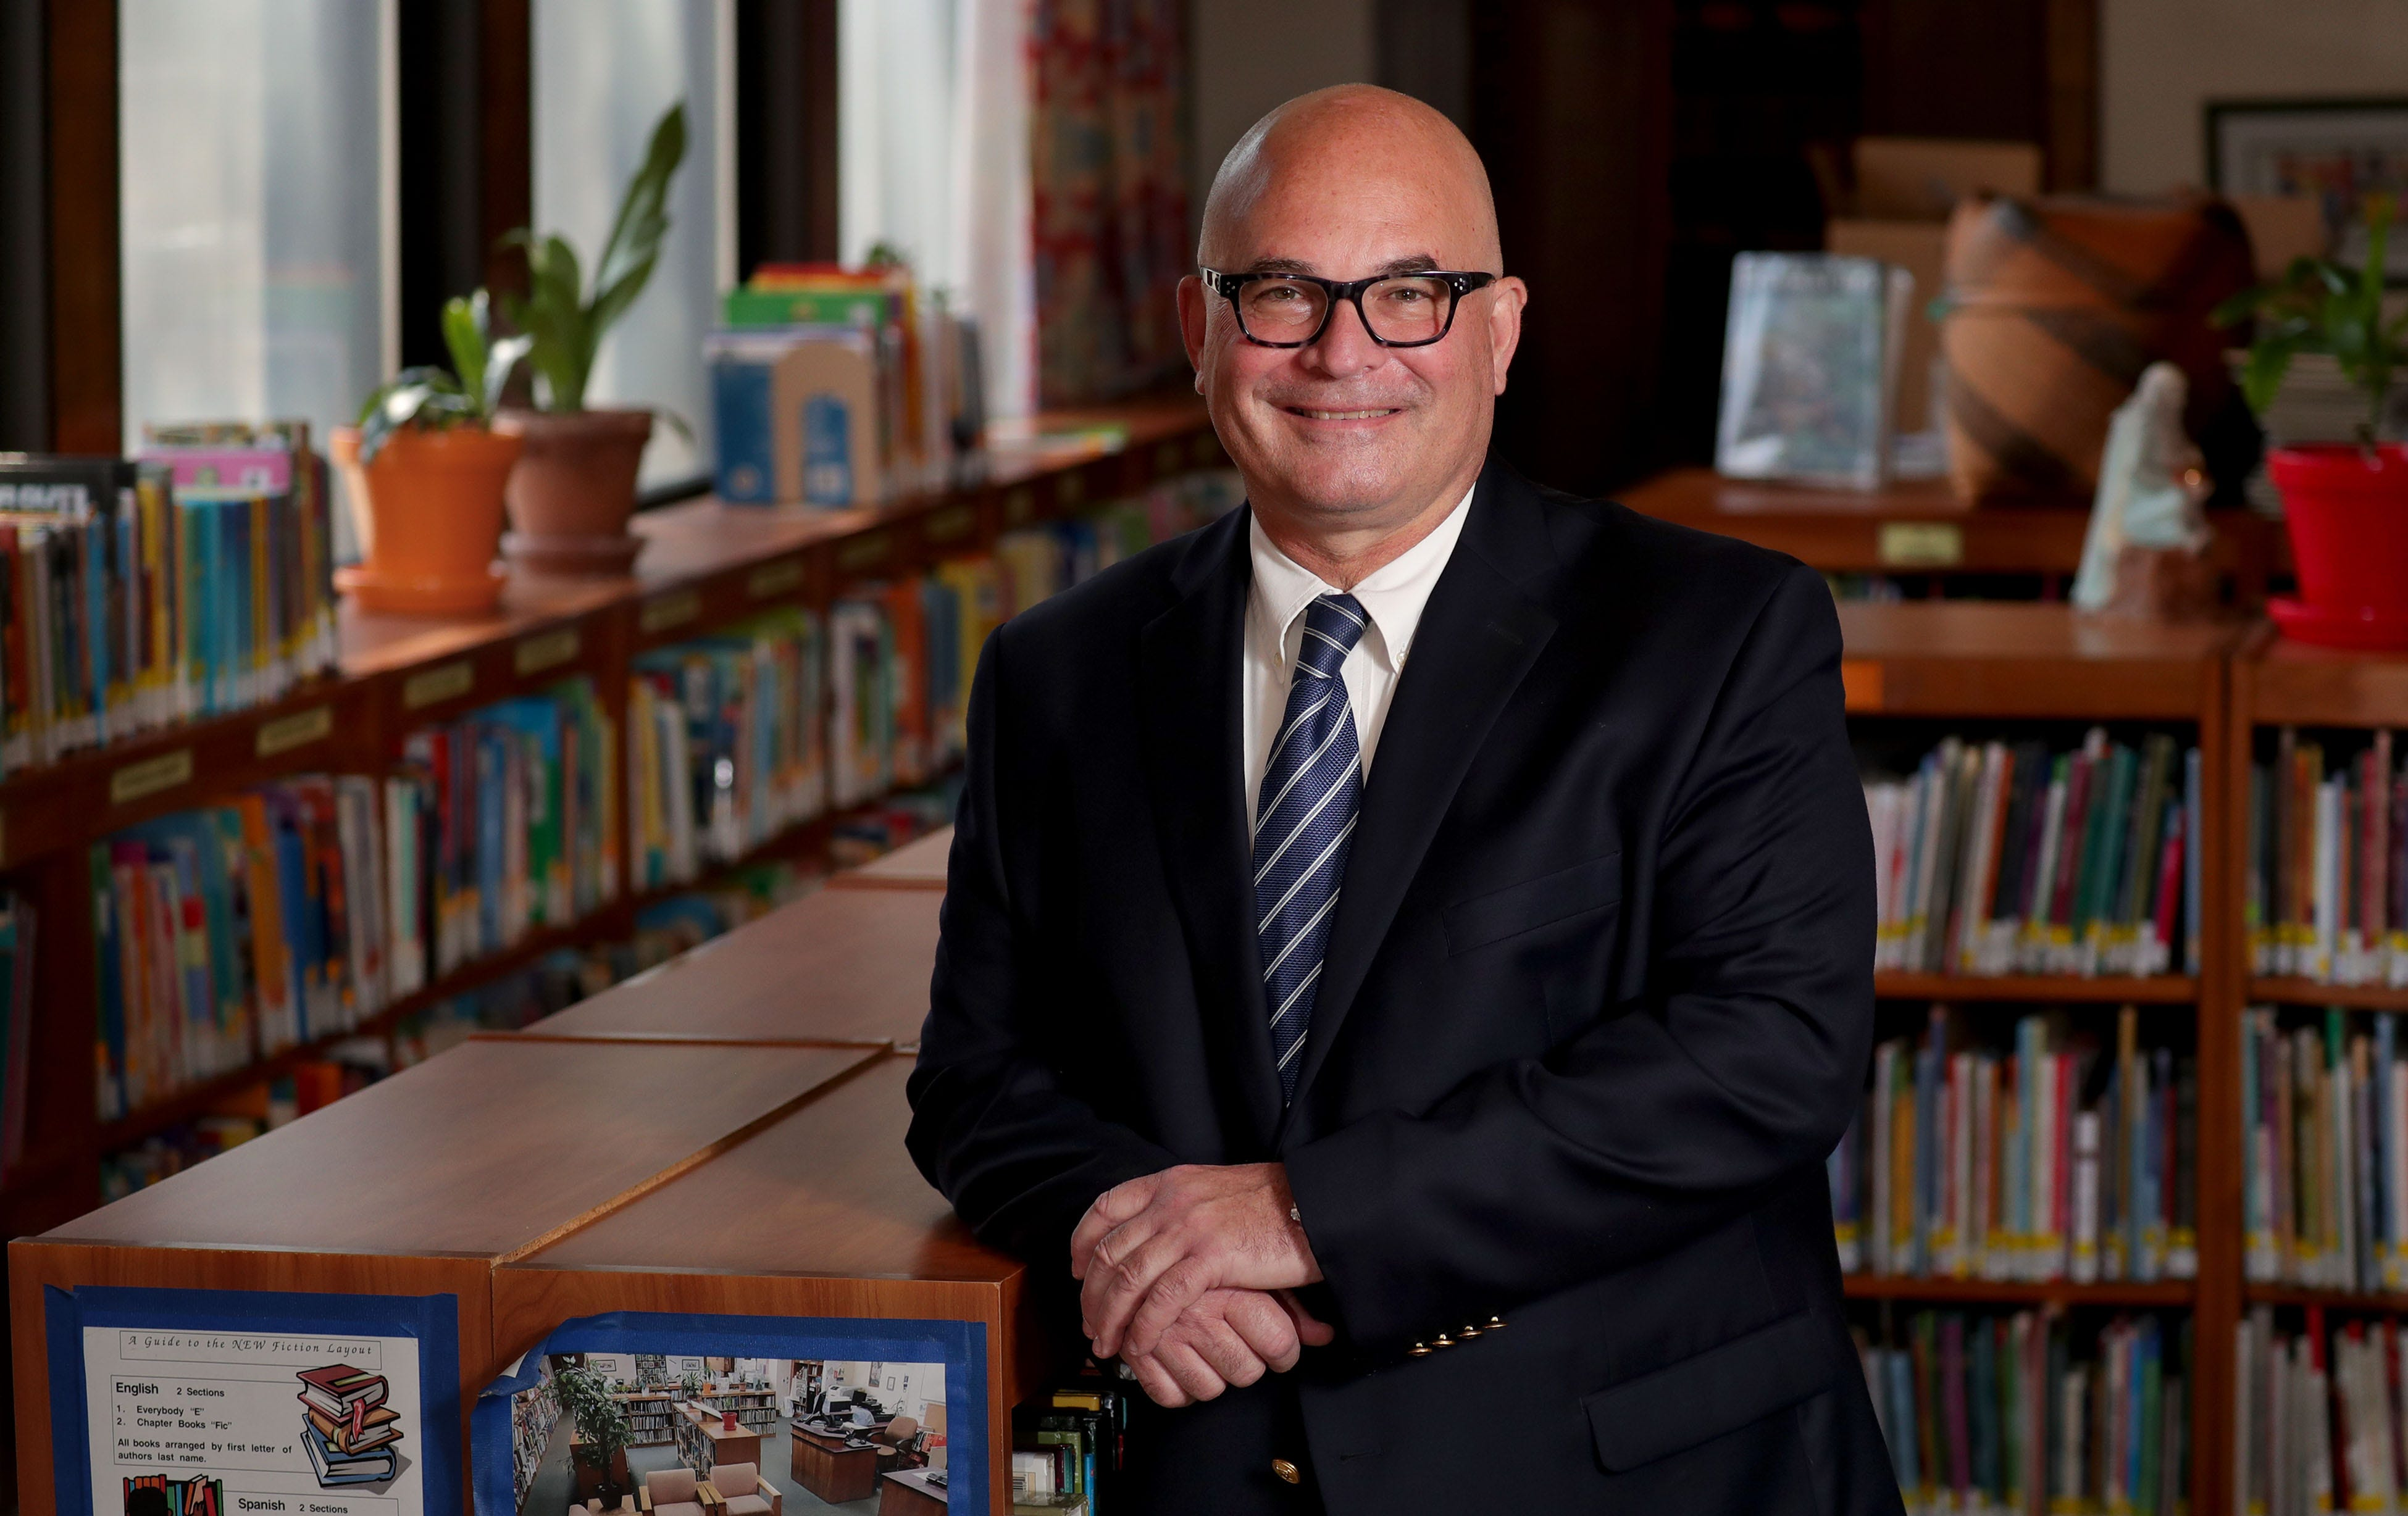 Escuela Vieau school Principal Marko Radmanovic at the school in Milwaukee. The school is participating in Fund My Future, a city-organized program to set up all kindergarten students with a 529 savings investment account for college or further post-secondary training.